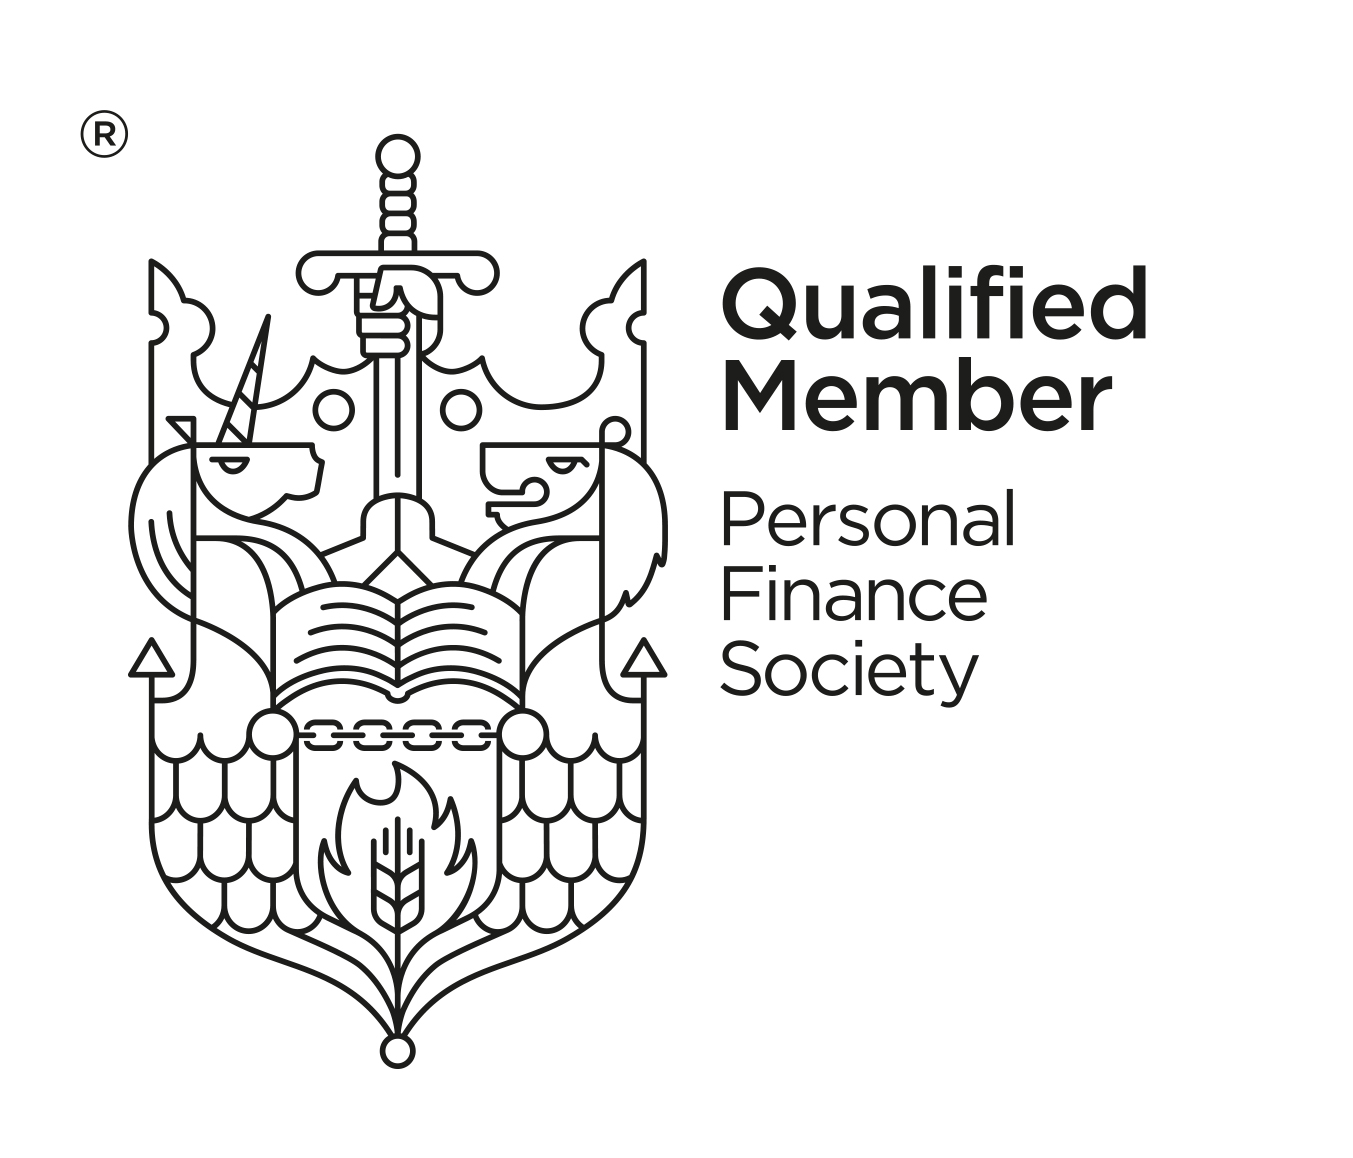 Qualified Fellow of the Professional Finance Society